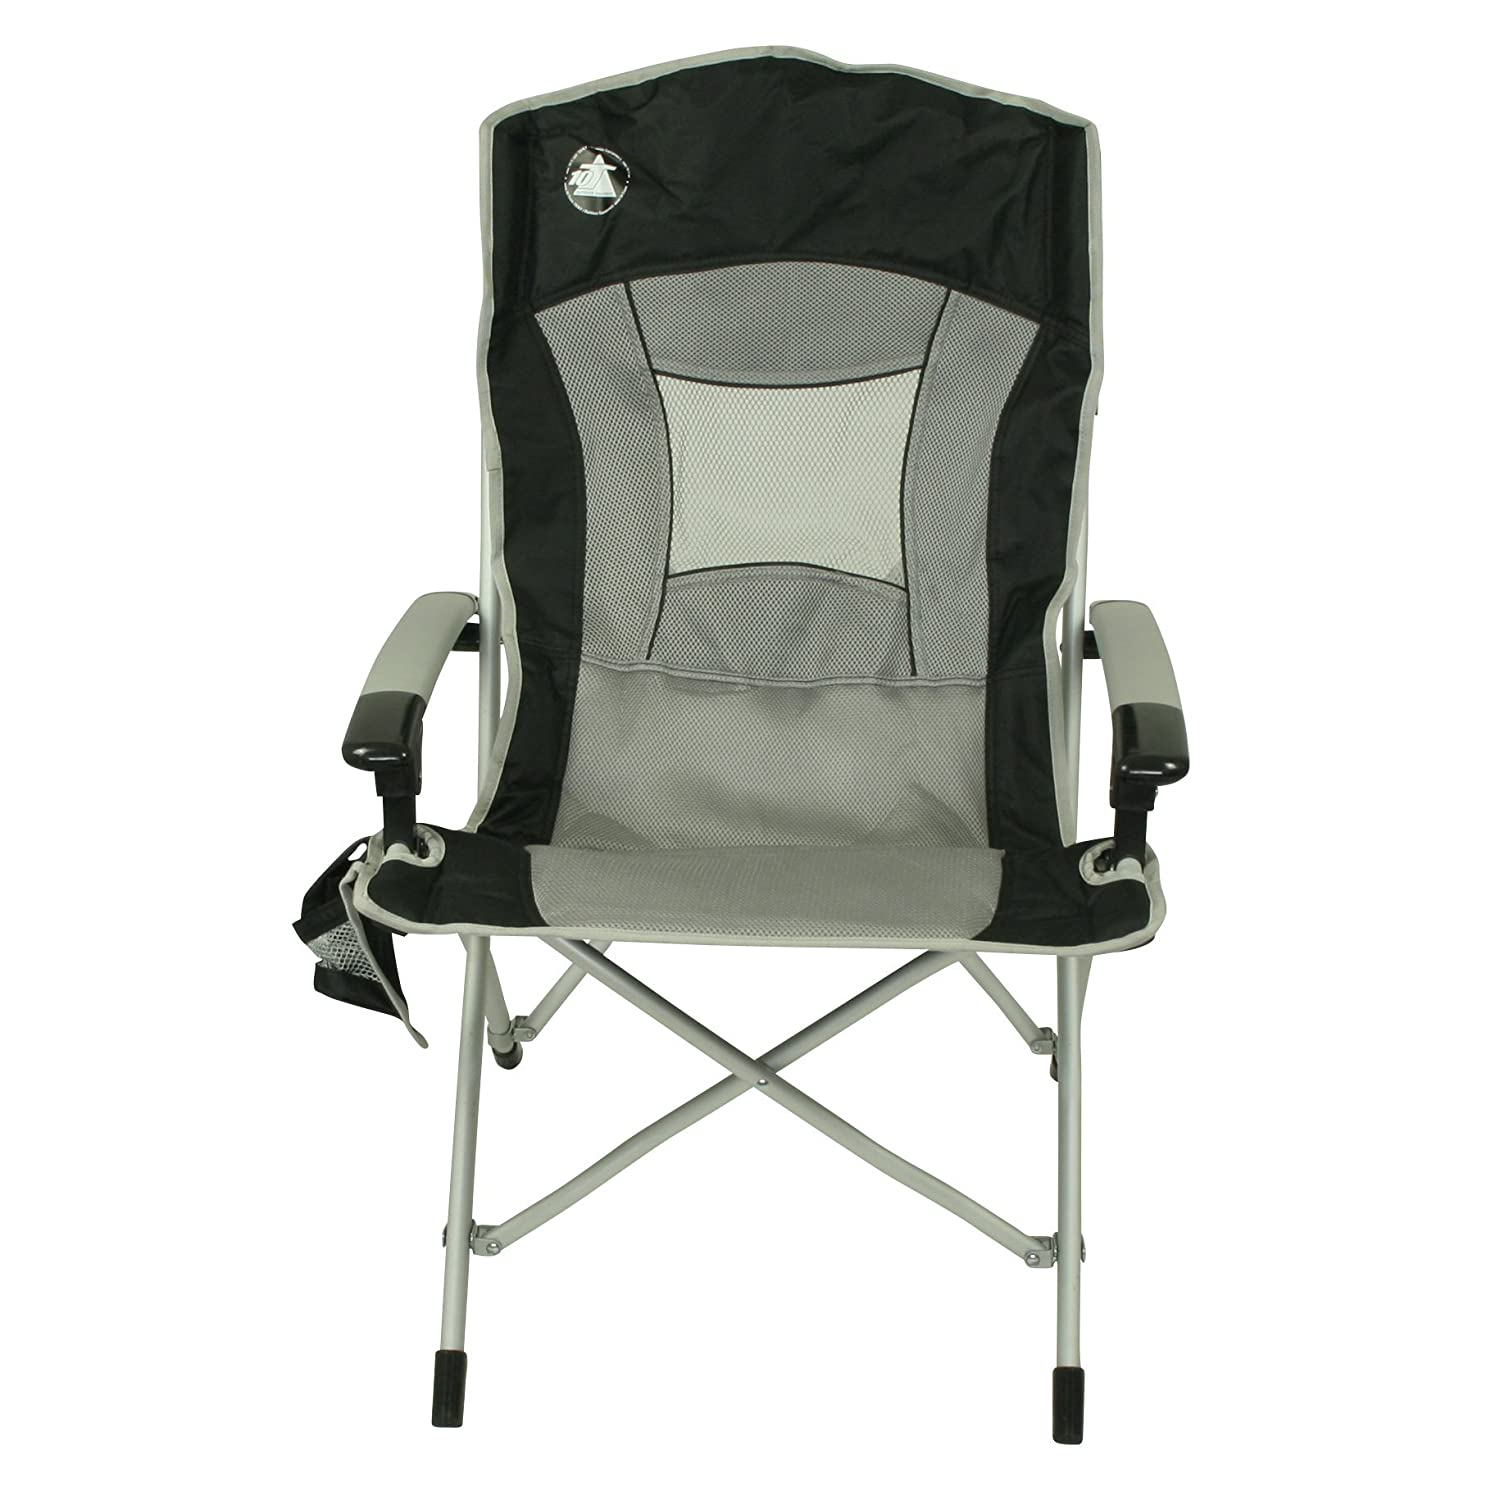 10T Big Boy Aluminium camping chair solid high back with